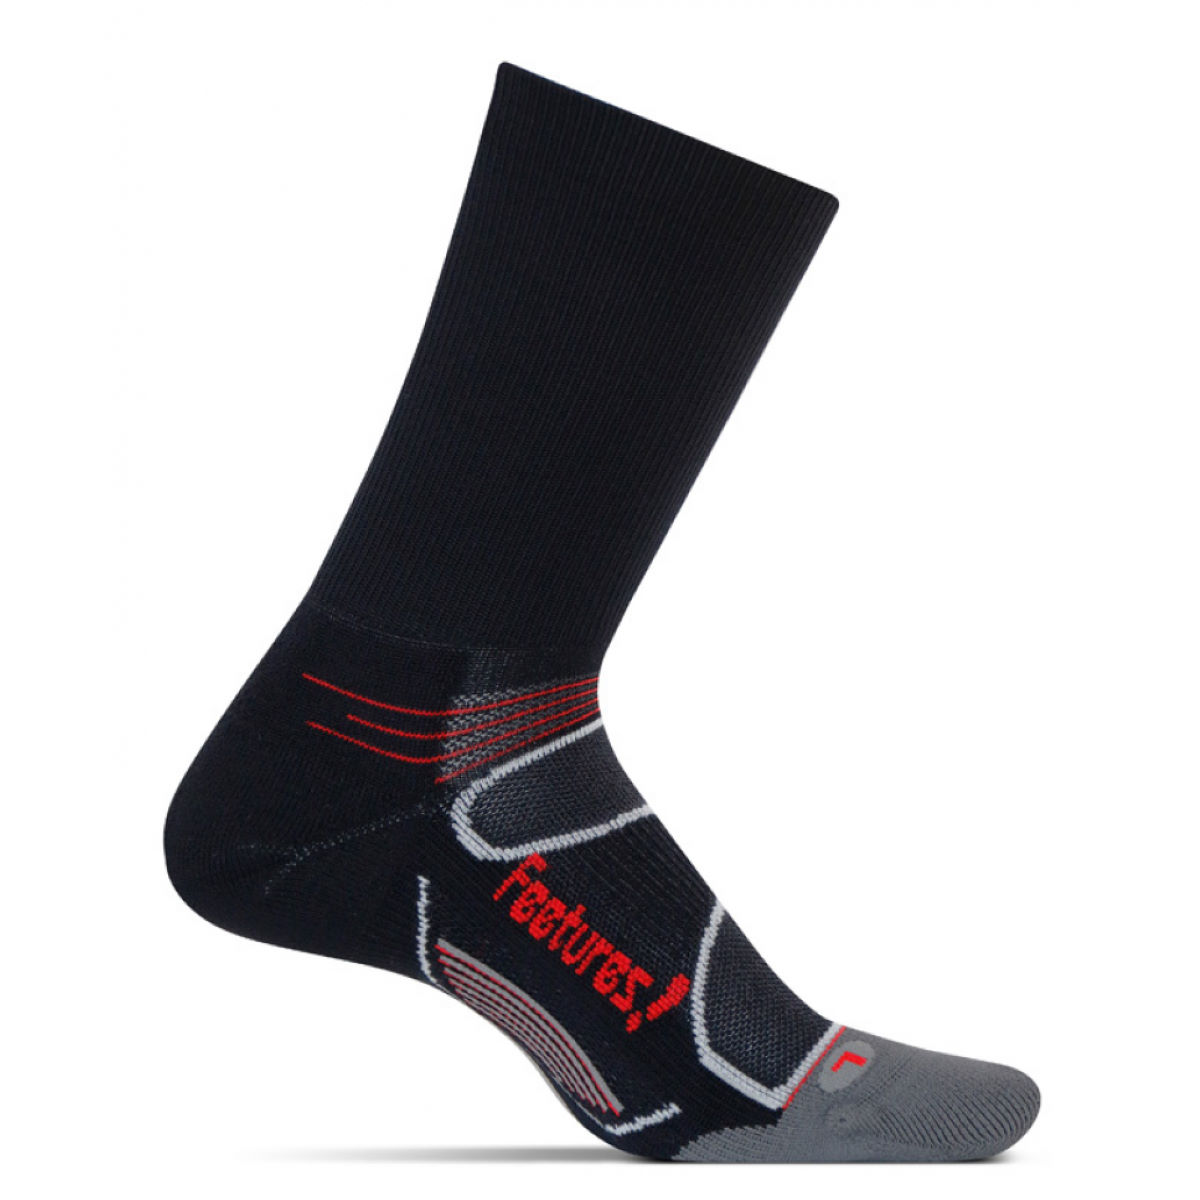 Chaussettes Feetures! Elite Light Cushion Mini Crew - L Noir/Rouge